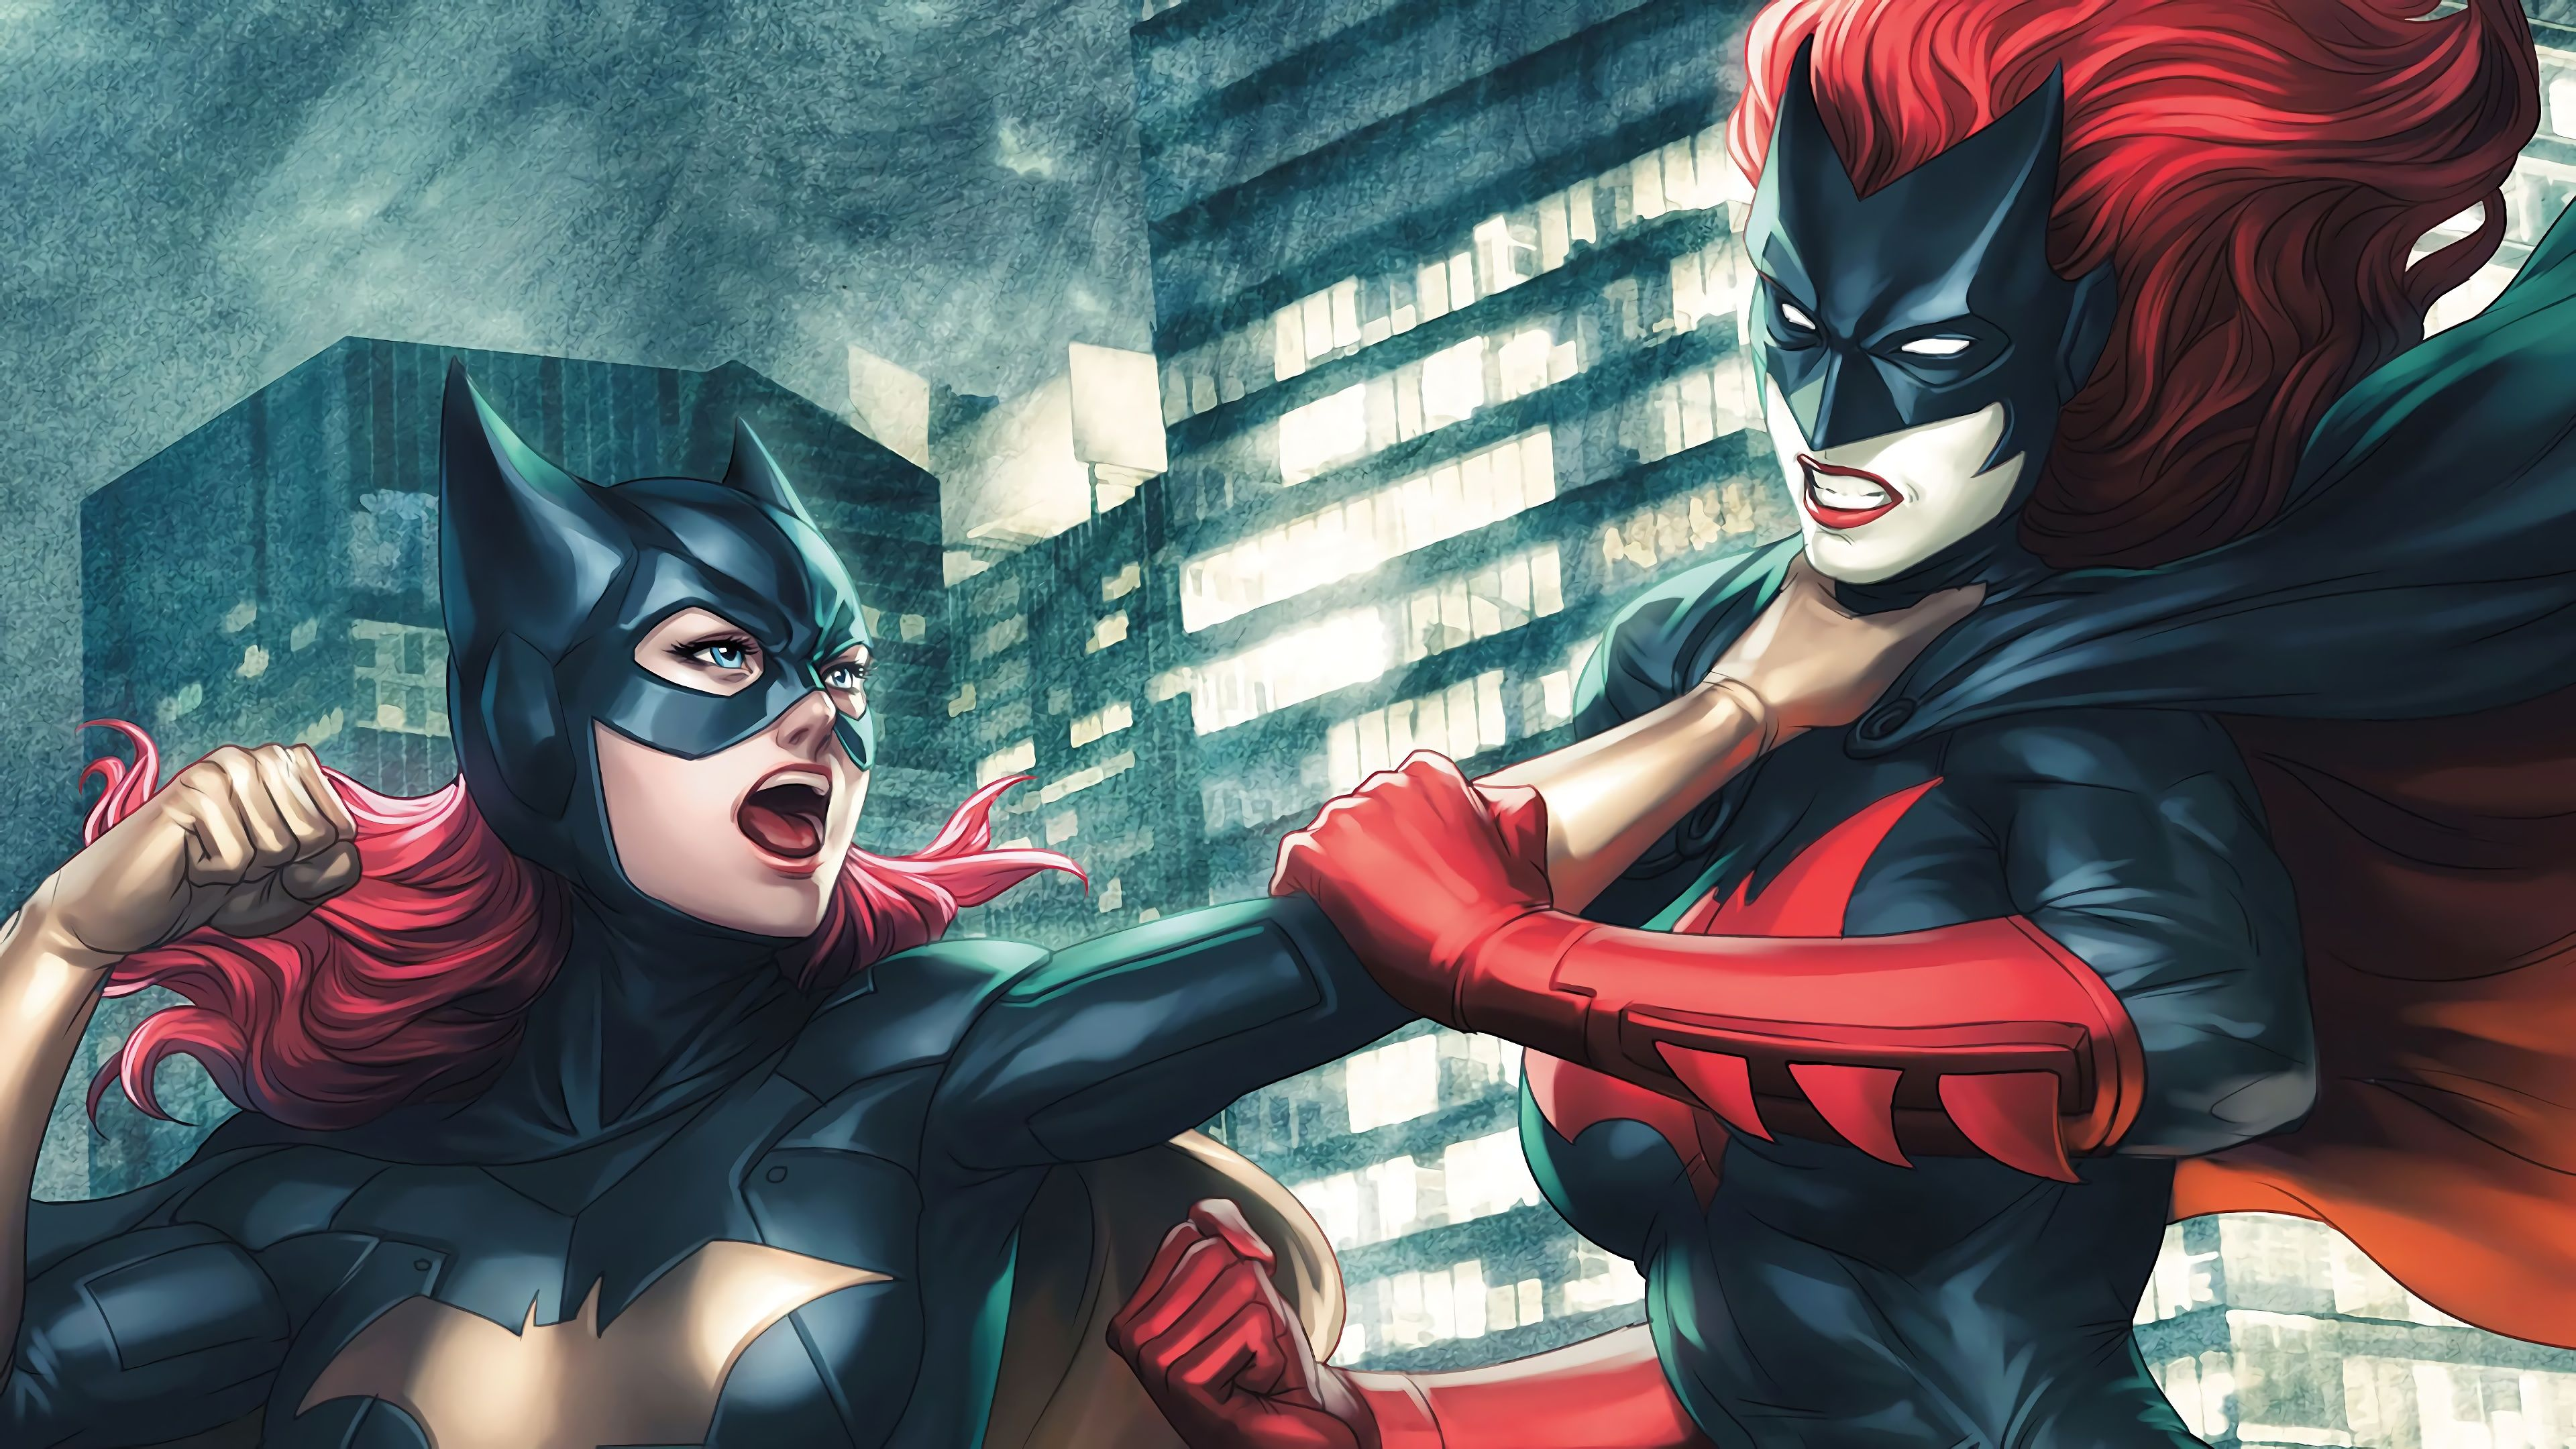 Batgirl Vs Batwoman Fight 4k Superheroes Wallpapers Hd Wallpapers Digital Art Wallpapers Batwoman Wallpapers Batgirl Wa Superhero Artwork Batgirl Superhero